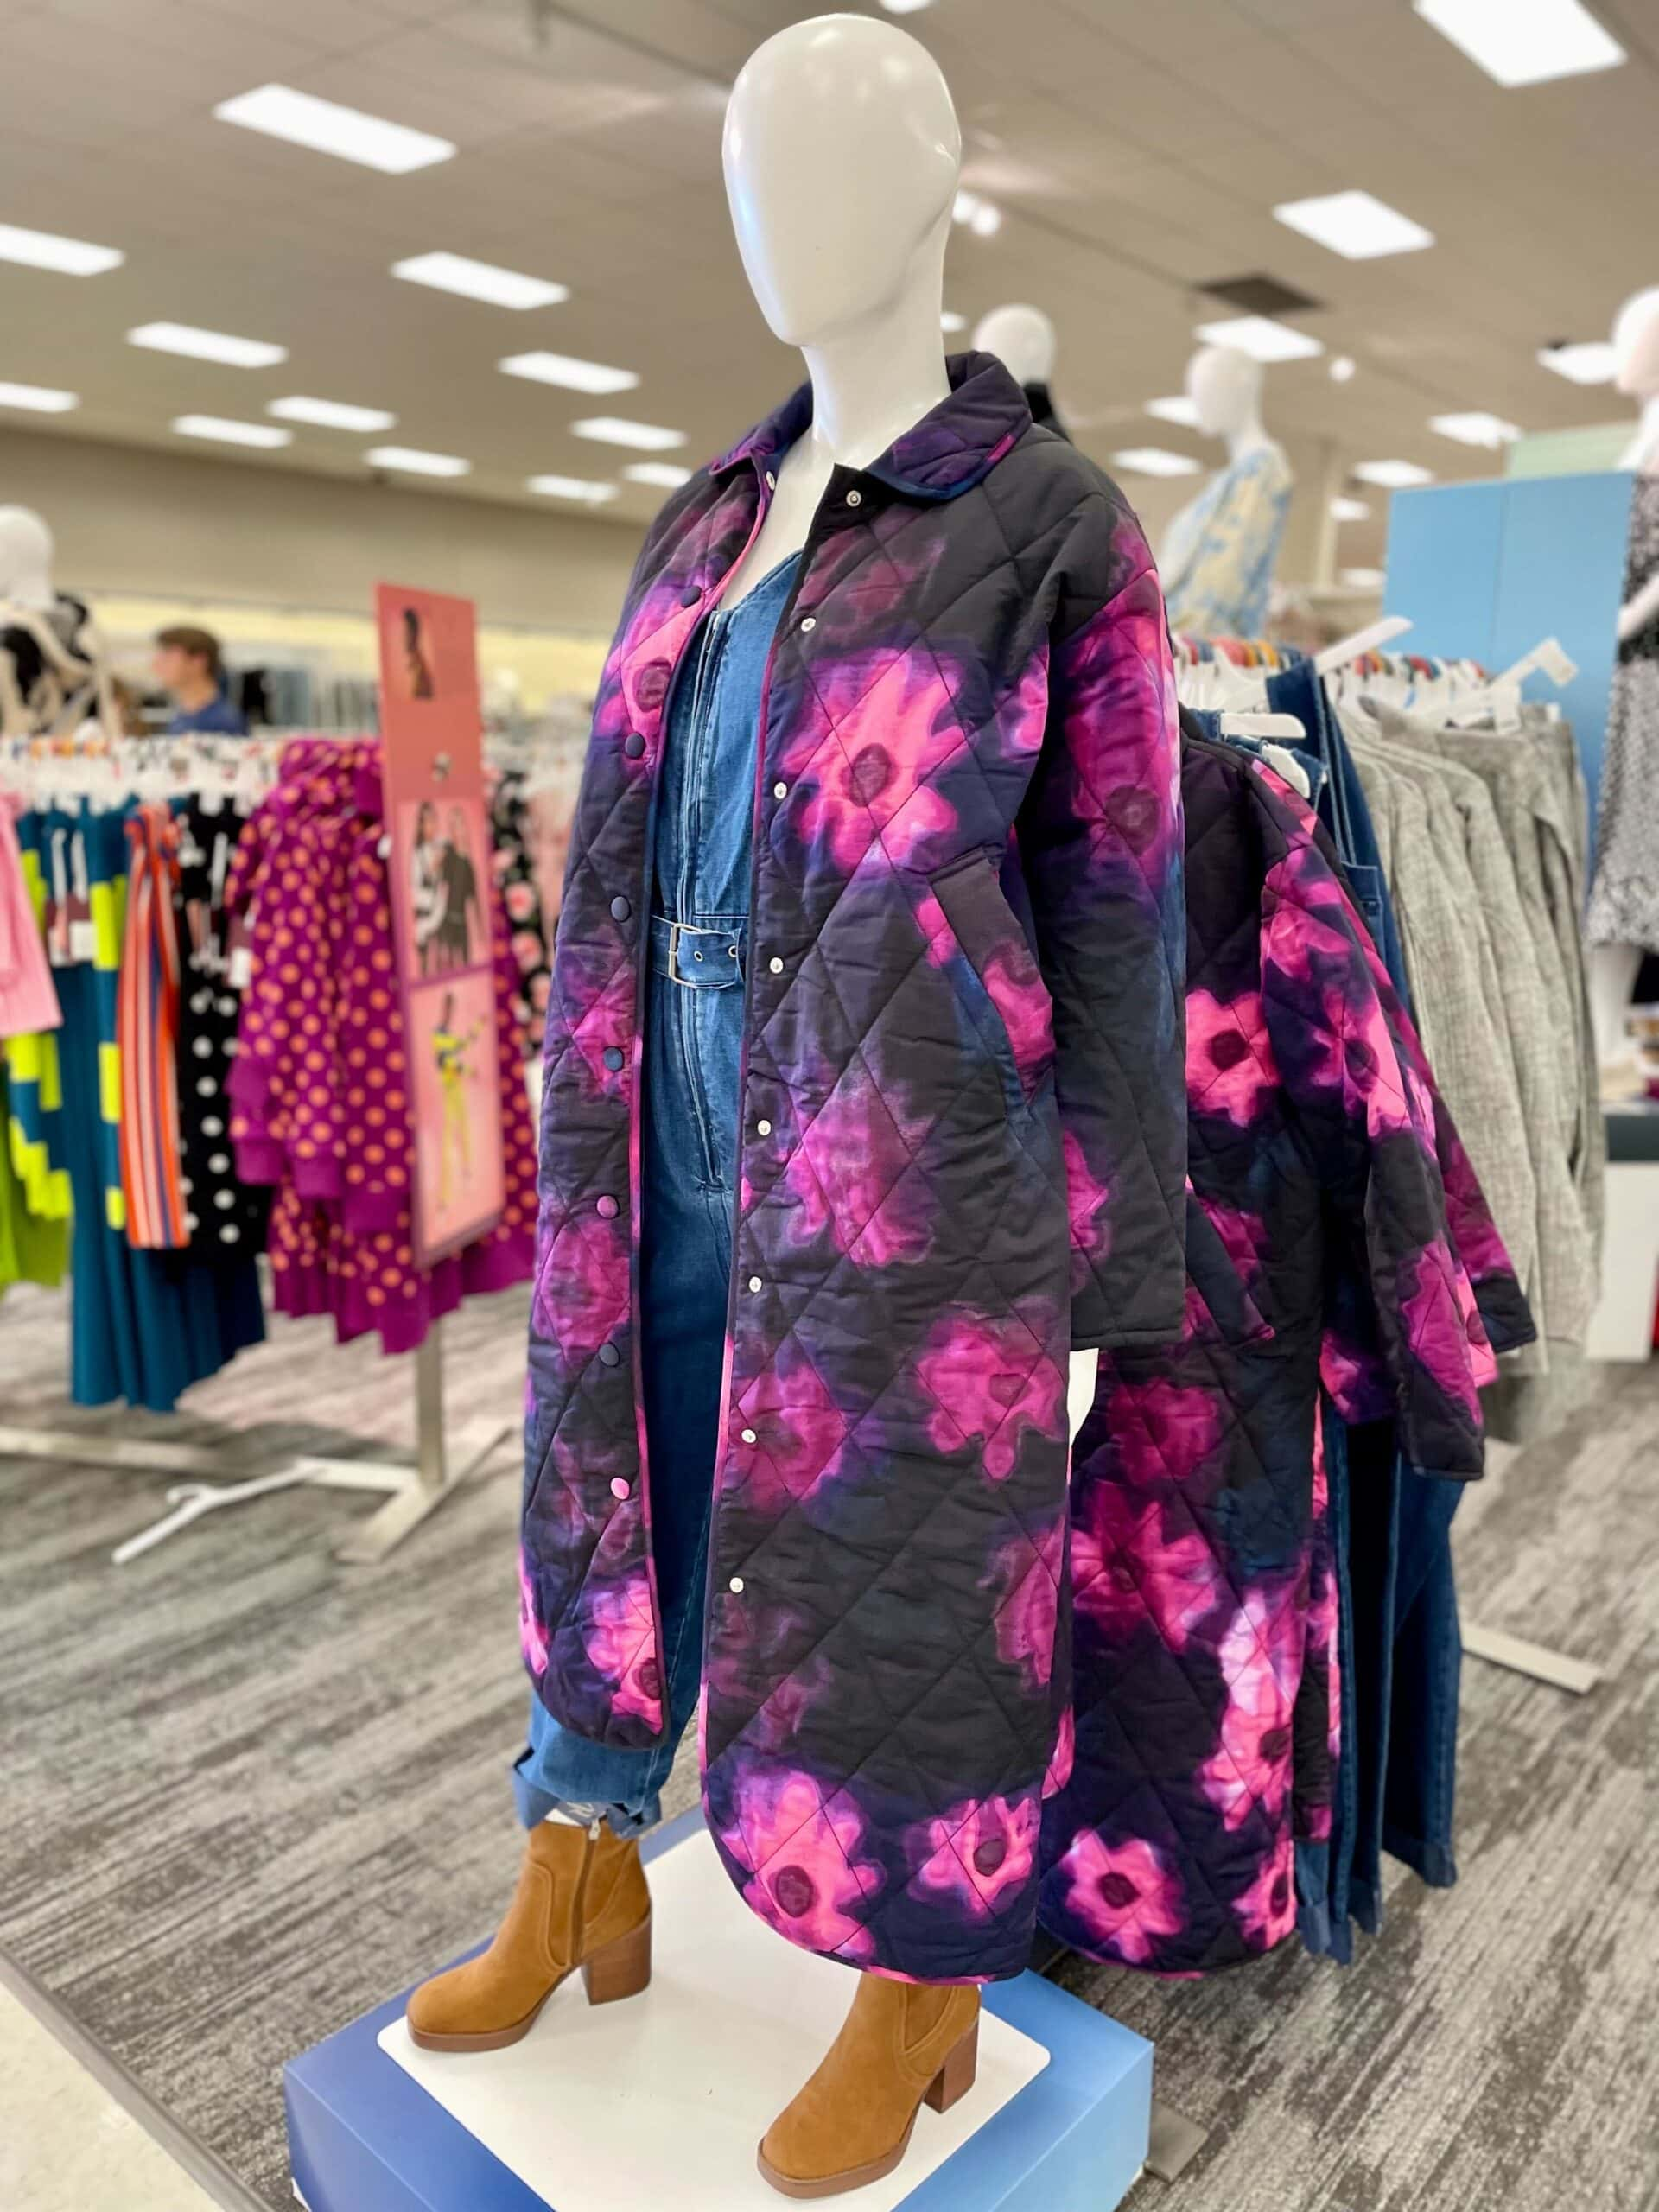 target clothes